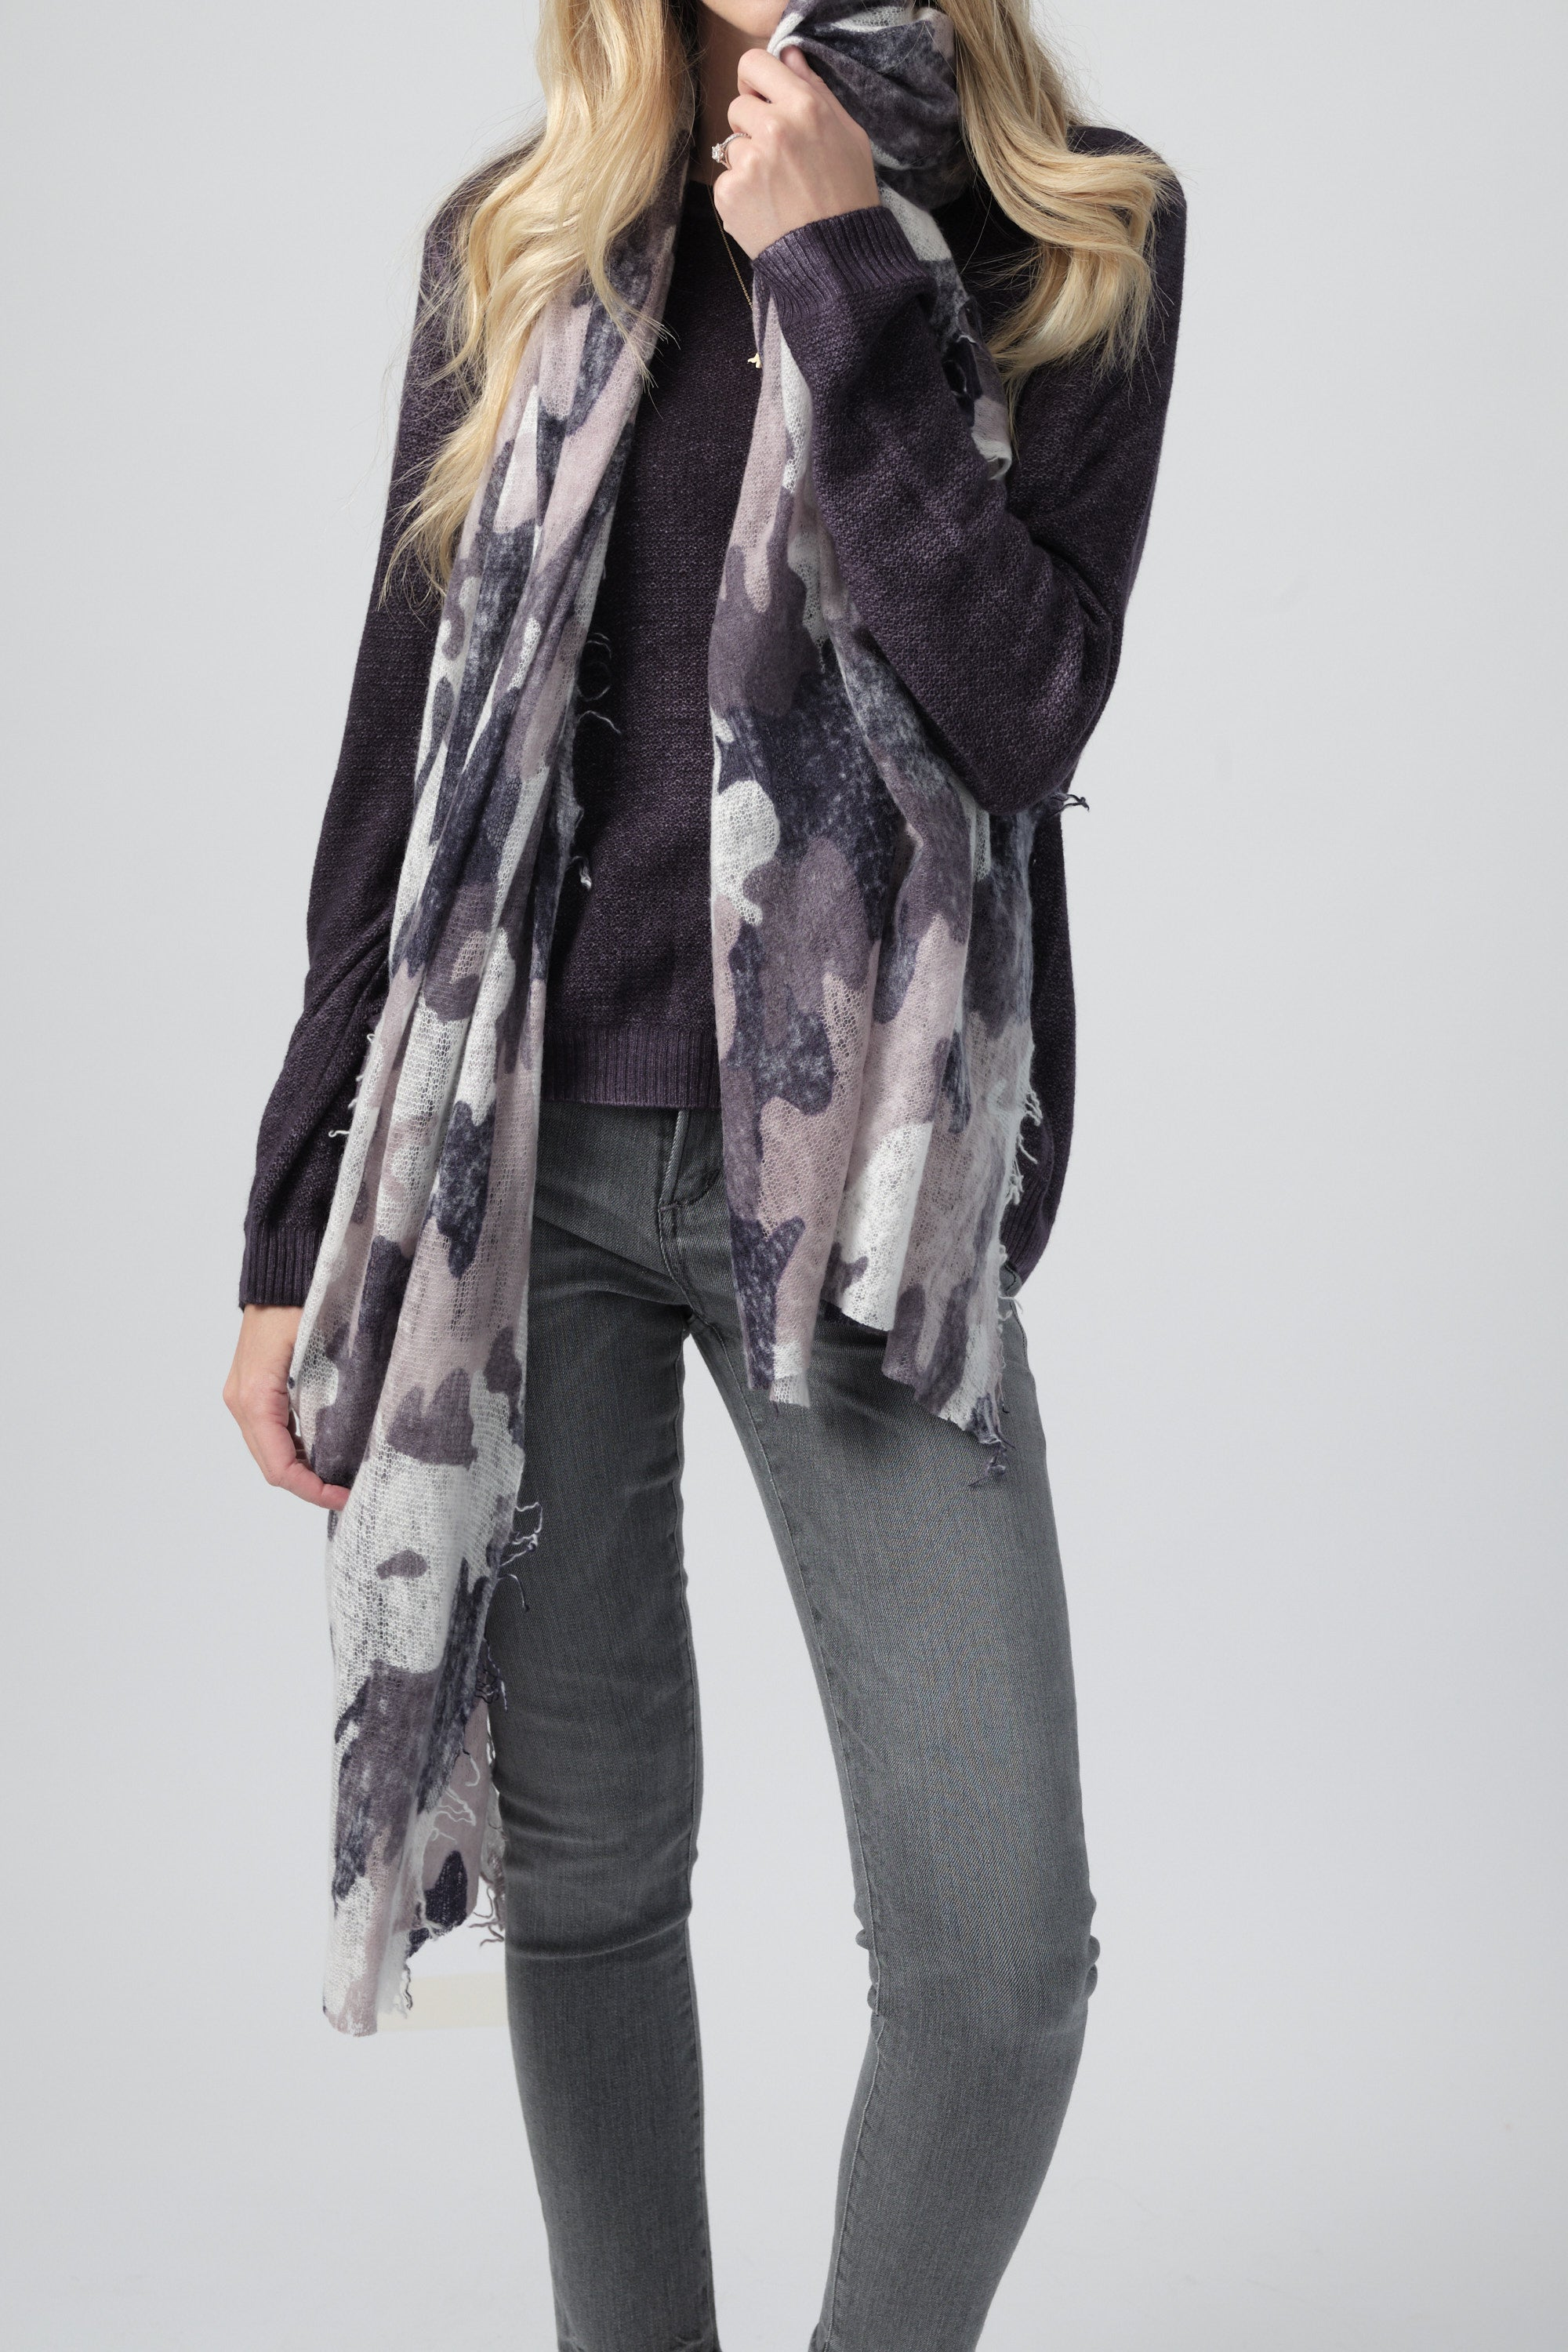 Cashmere Scarf in Purple Grey Camo Print